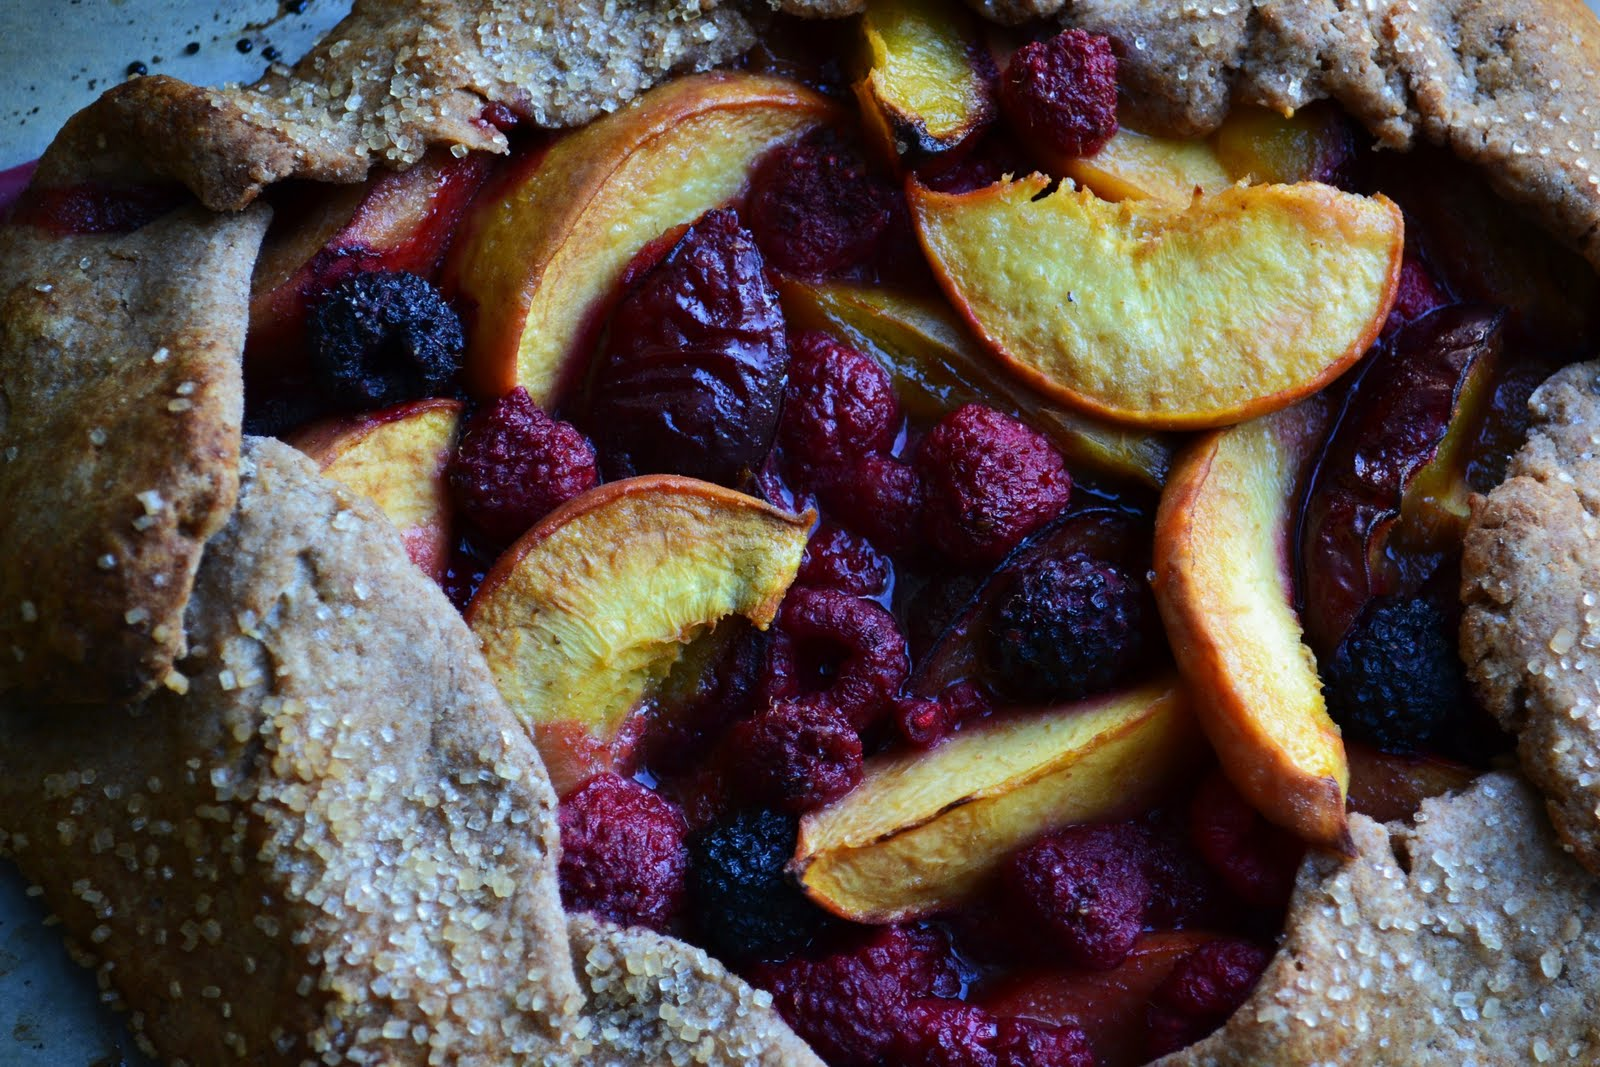 ... The Roots: Rustic Whole Wheat Raspberry, Plum, and Peach Crostata